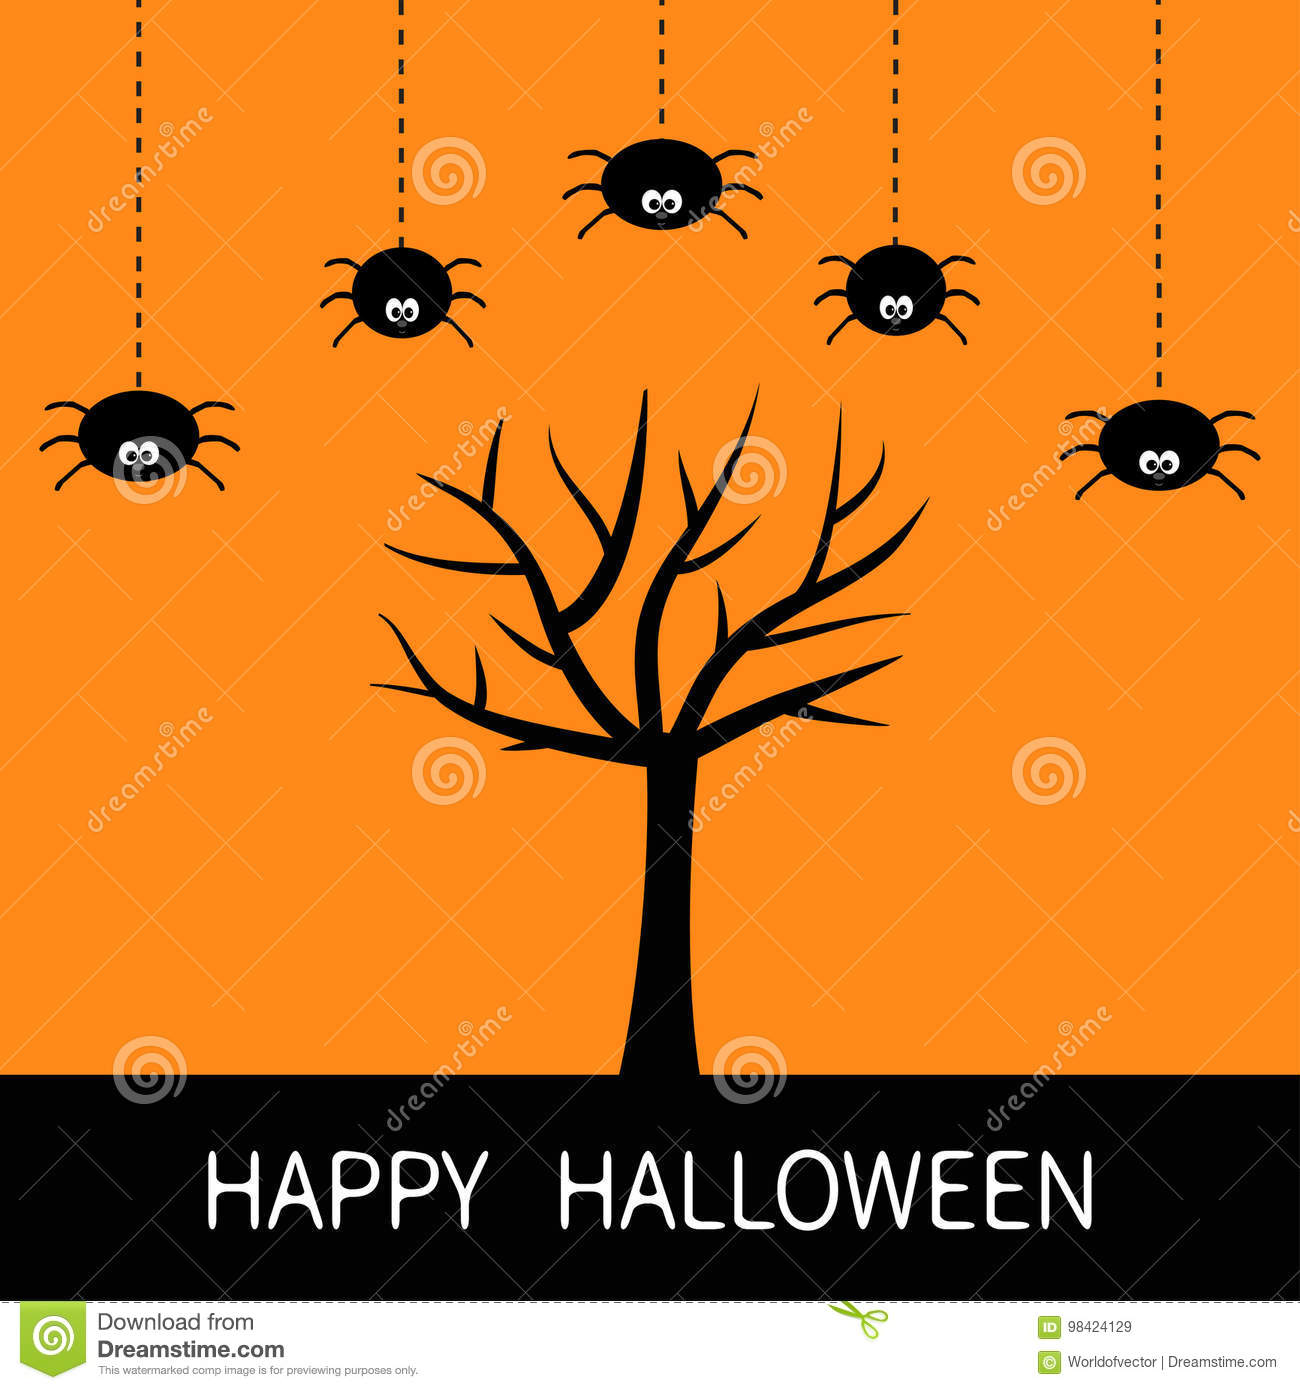 Happy Halloween Card. Black Tree Silhouette. Plant Branch. Spider Hanging  Dash Line. Cute Cartoon Character Set. Spooky. Royalty Free Vector